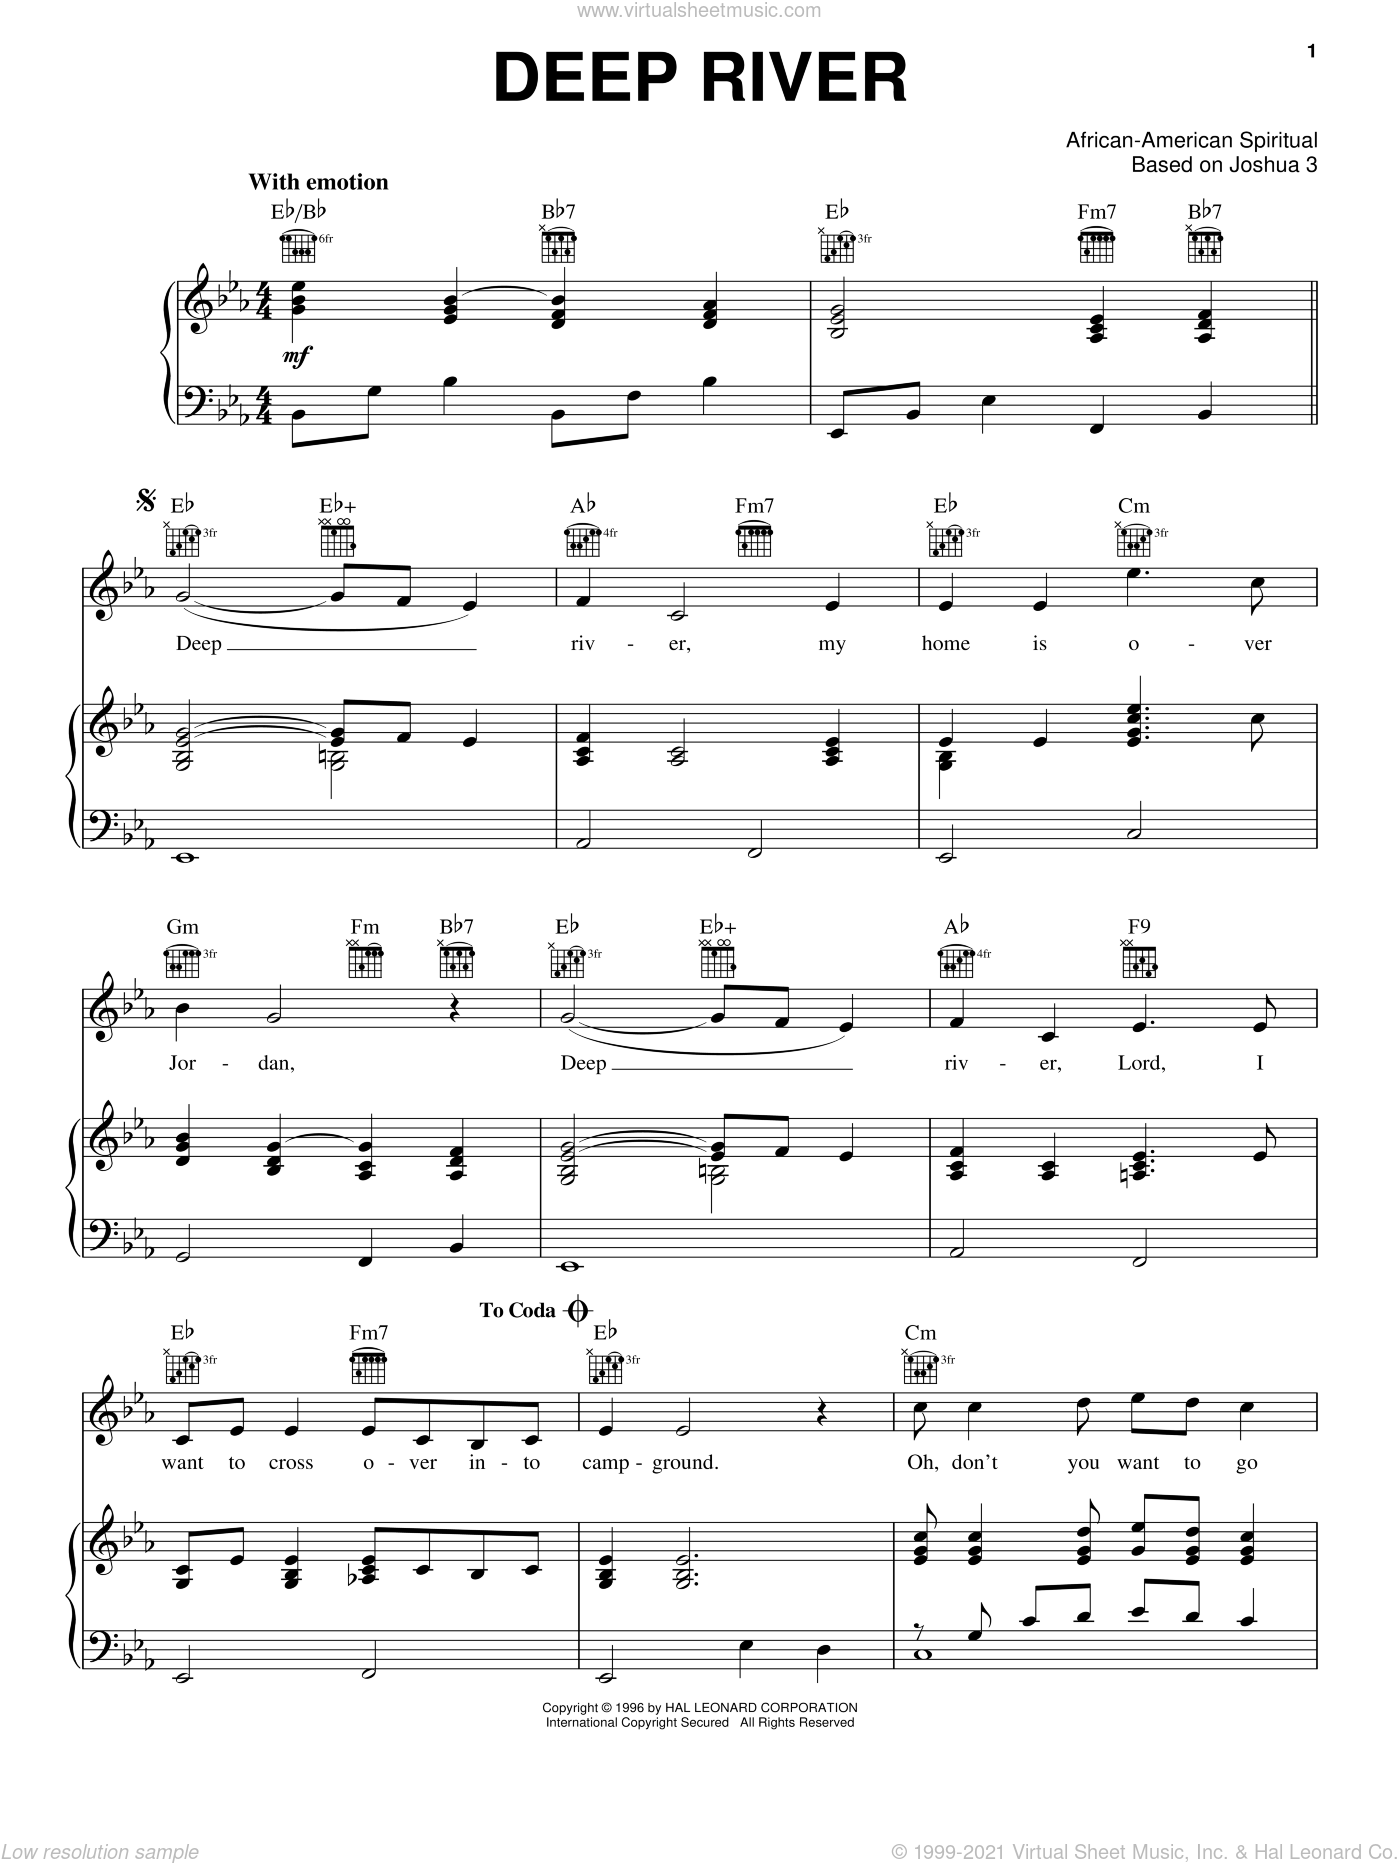 Deep River sheet music for voice, piano or guitar